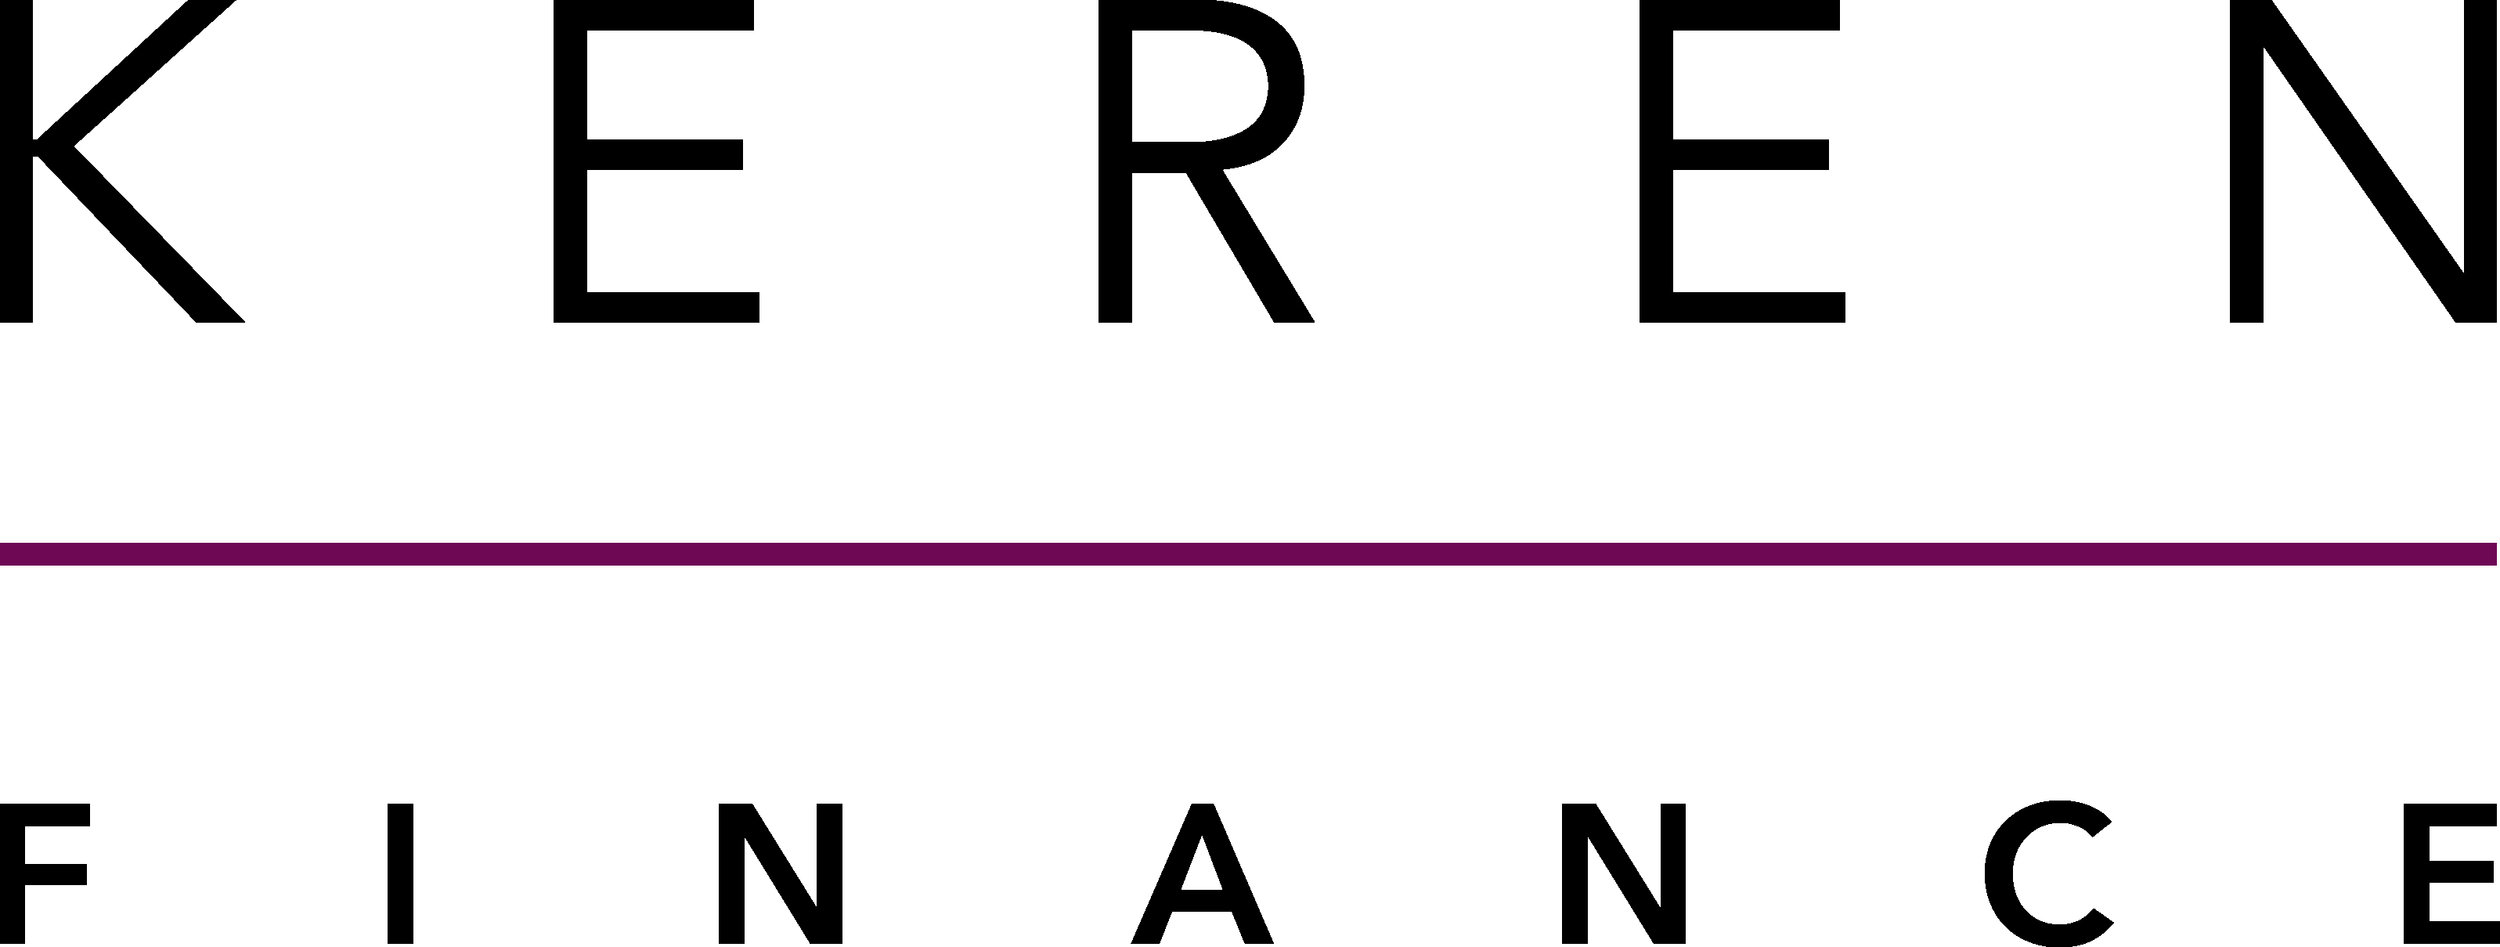 Keren Finance purple.jpg